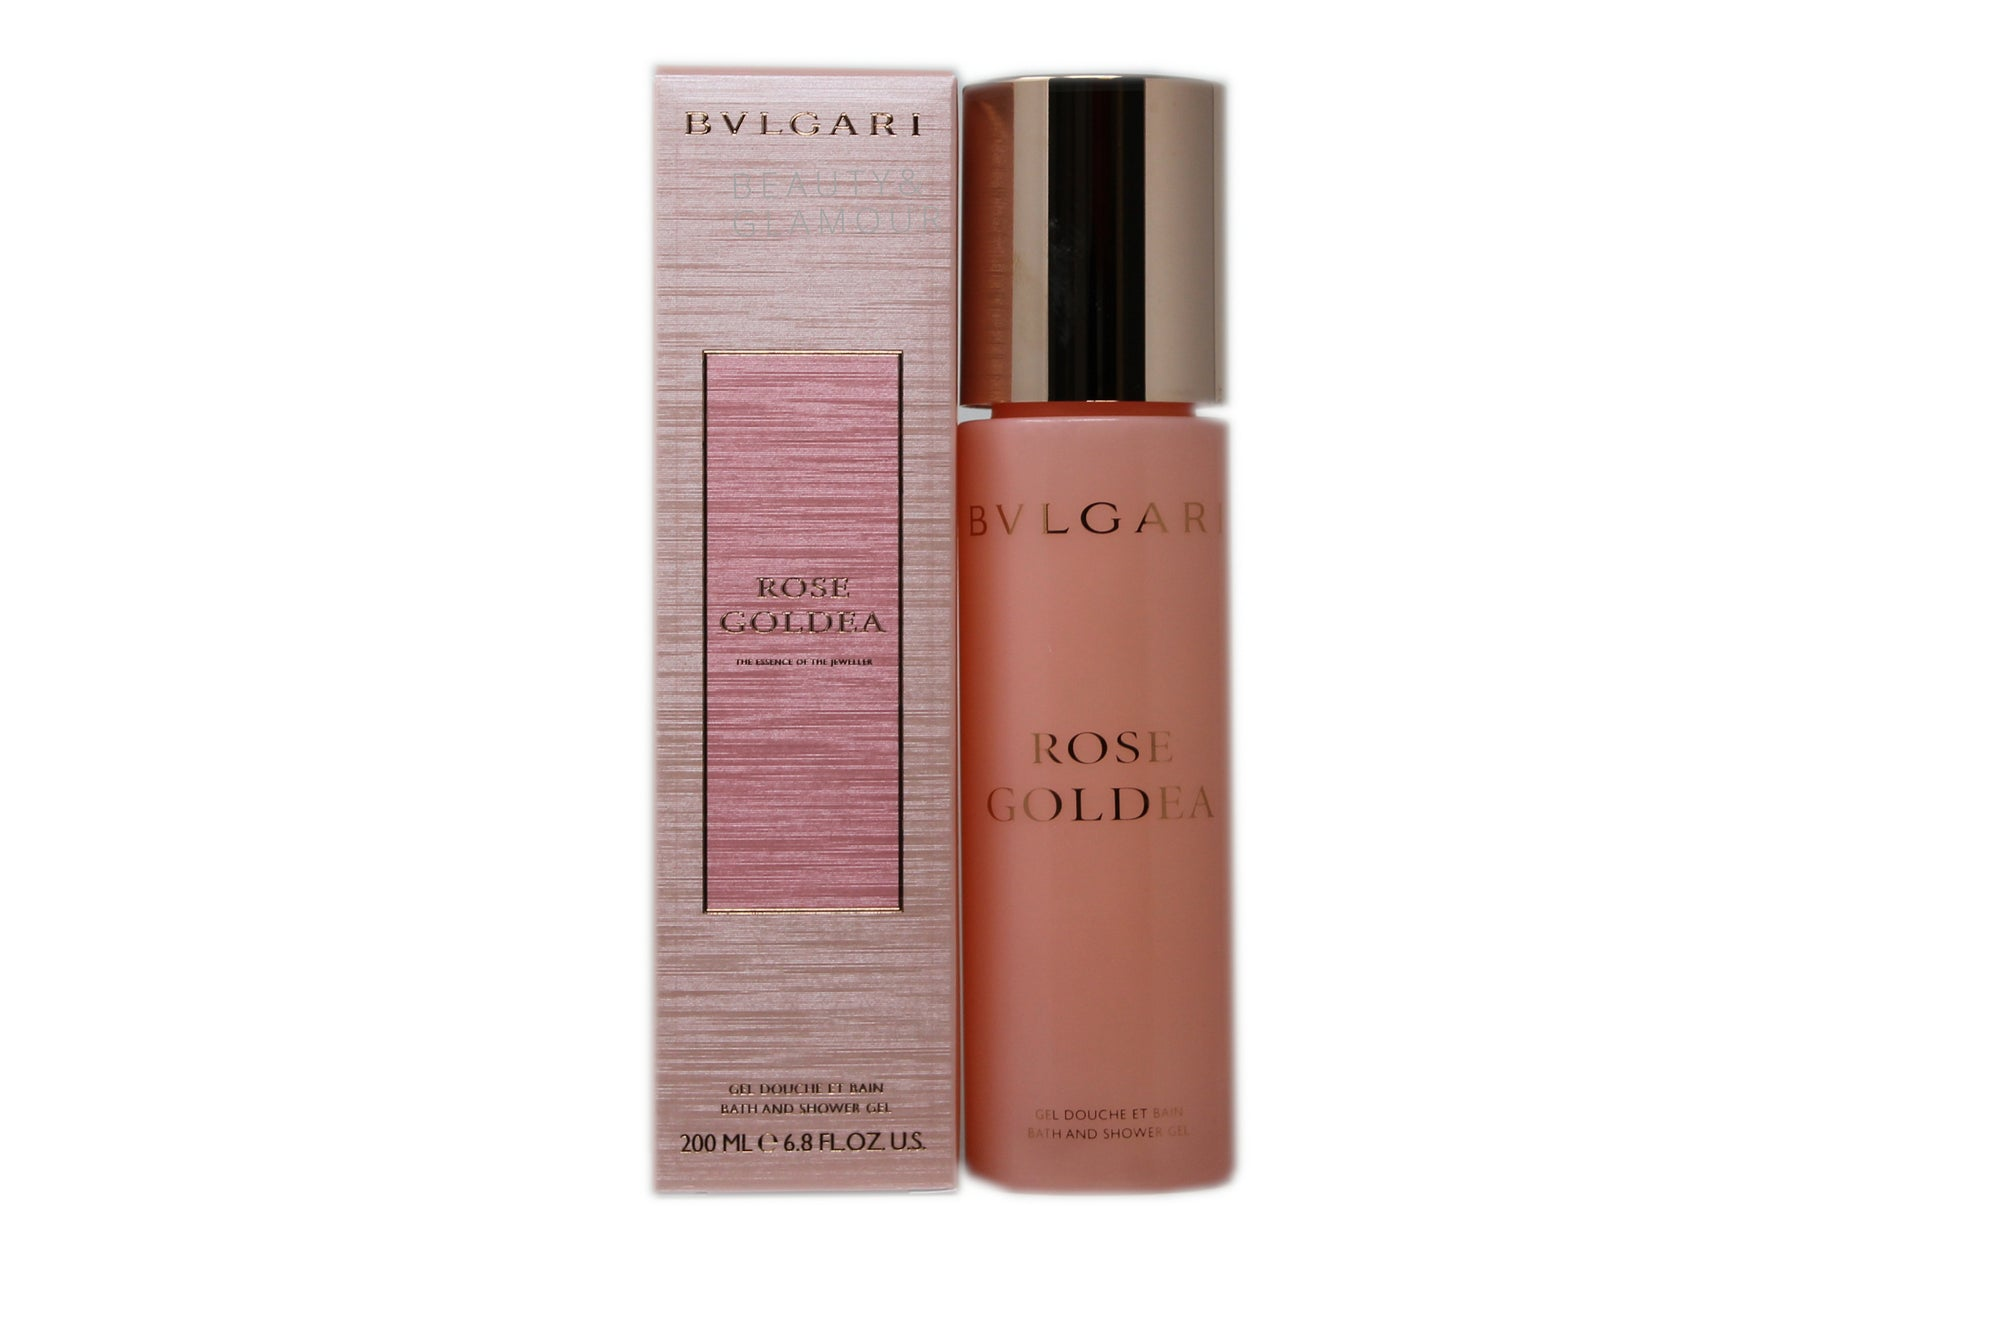 BVLGARI ROSE GOLDEA BATH AND SHOWER GEL